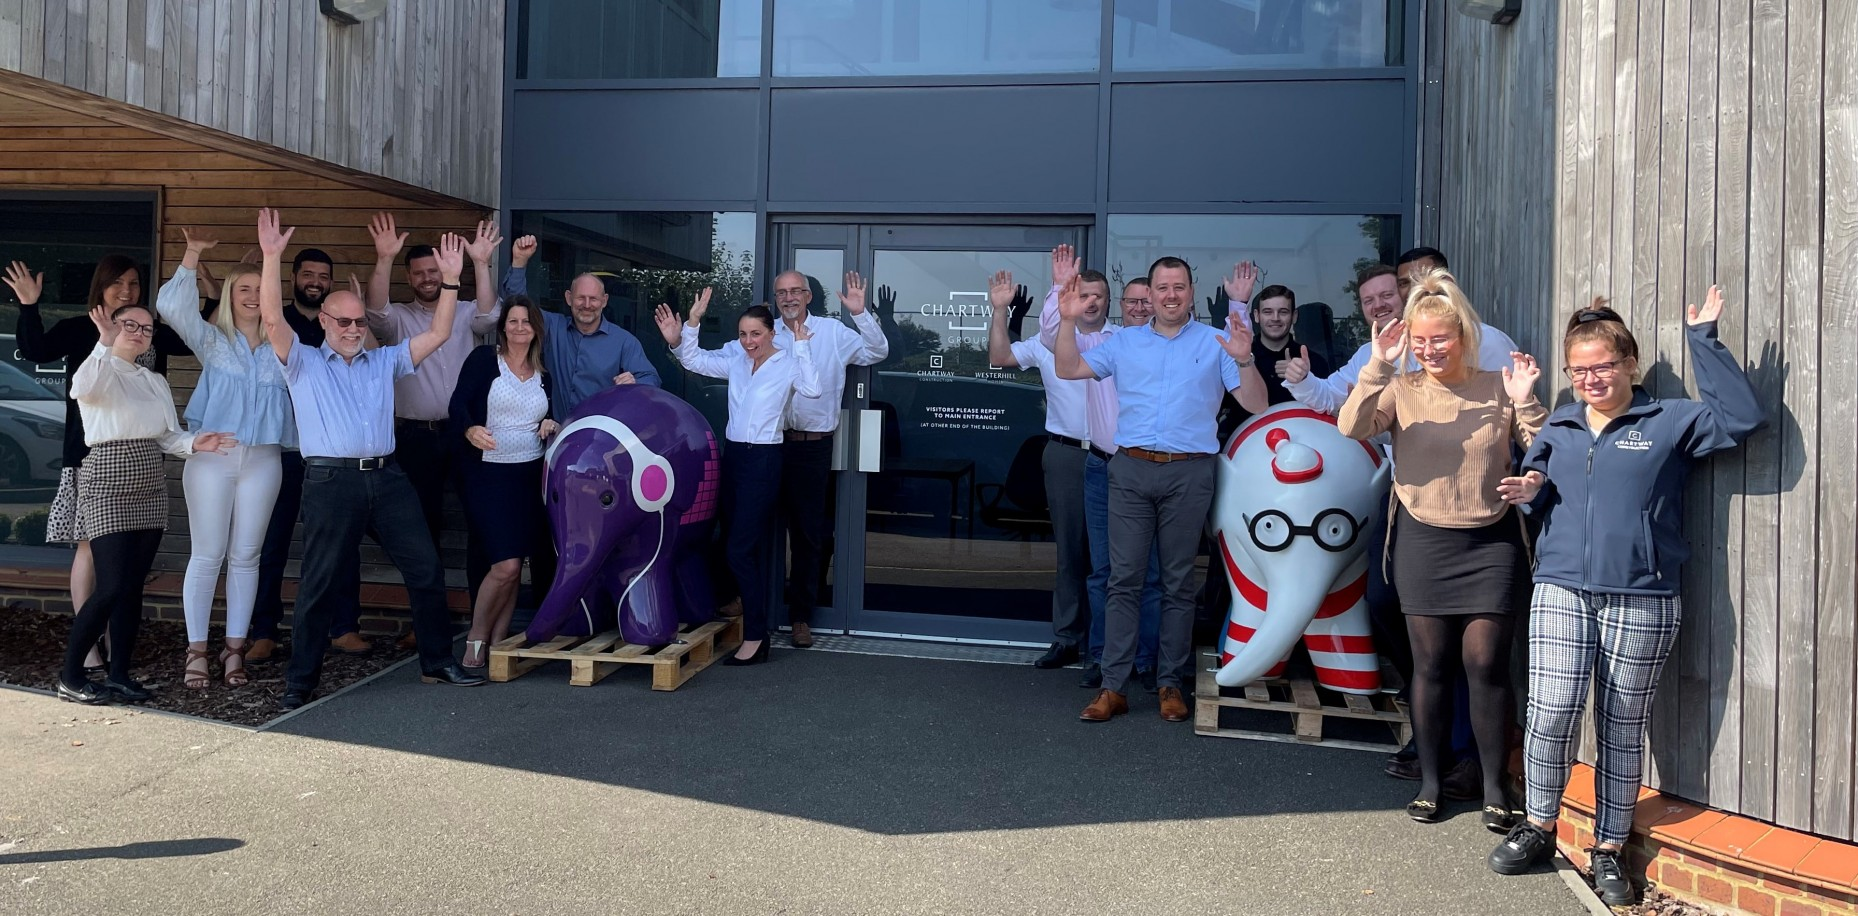 Our team were super excited to welcome our Elmer's to their new home at our Head Office